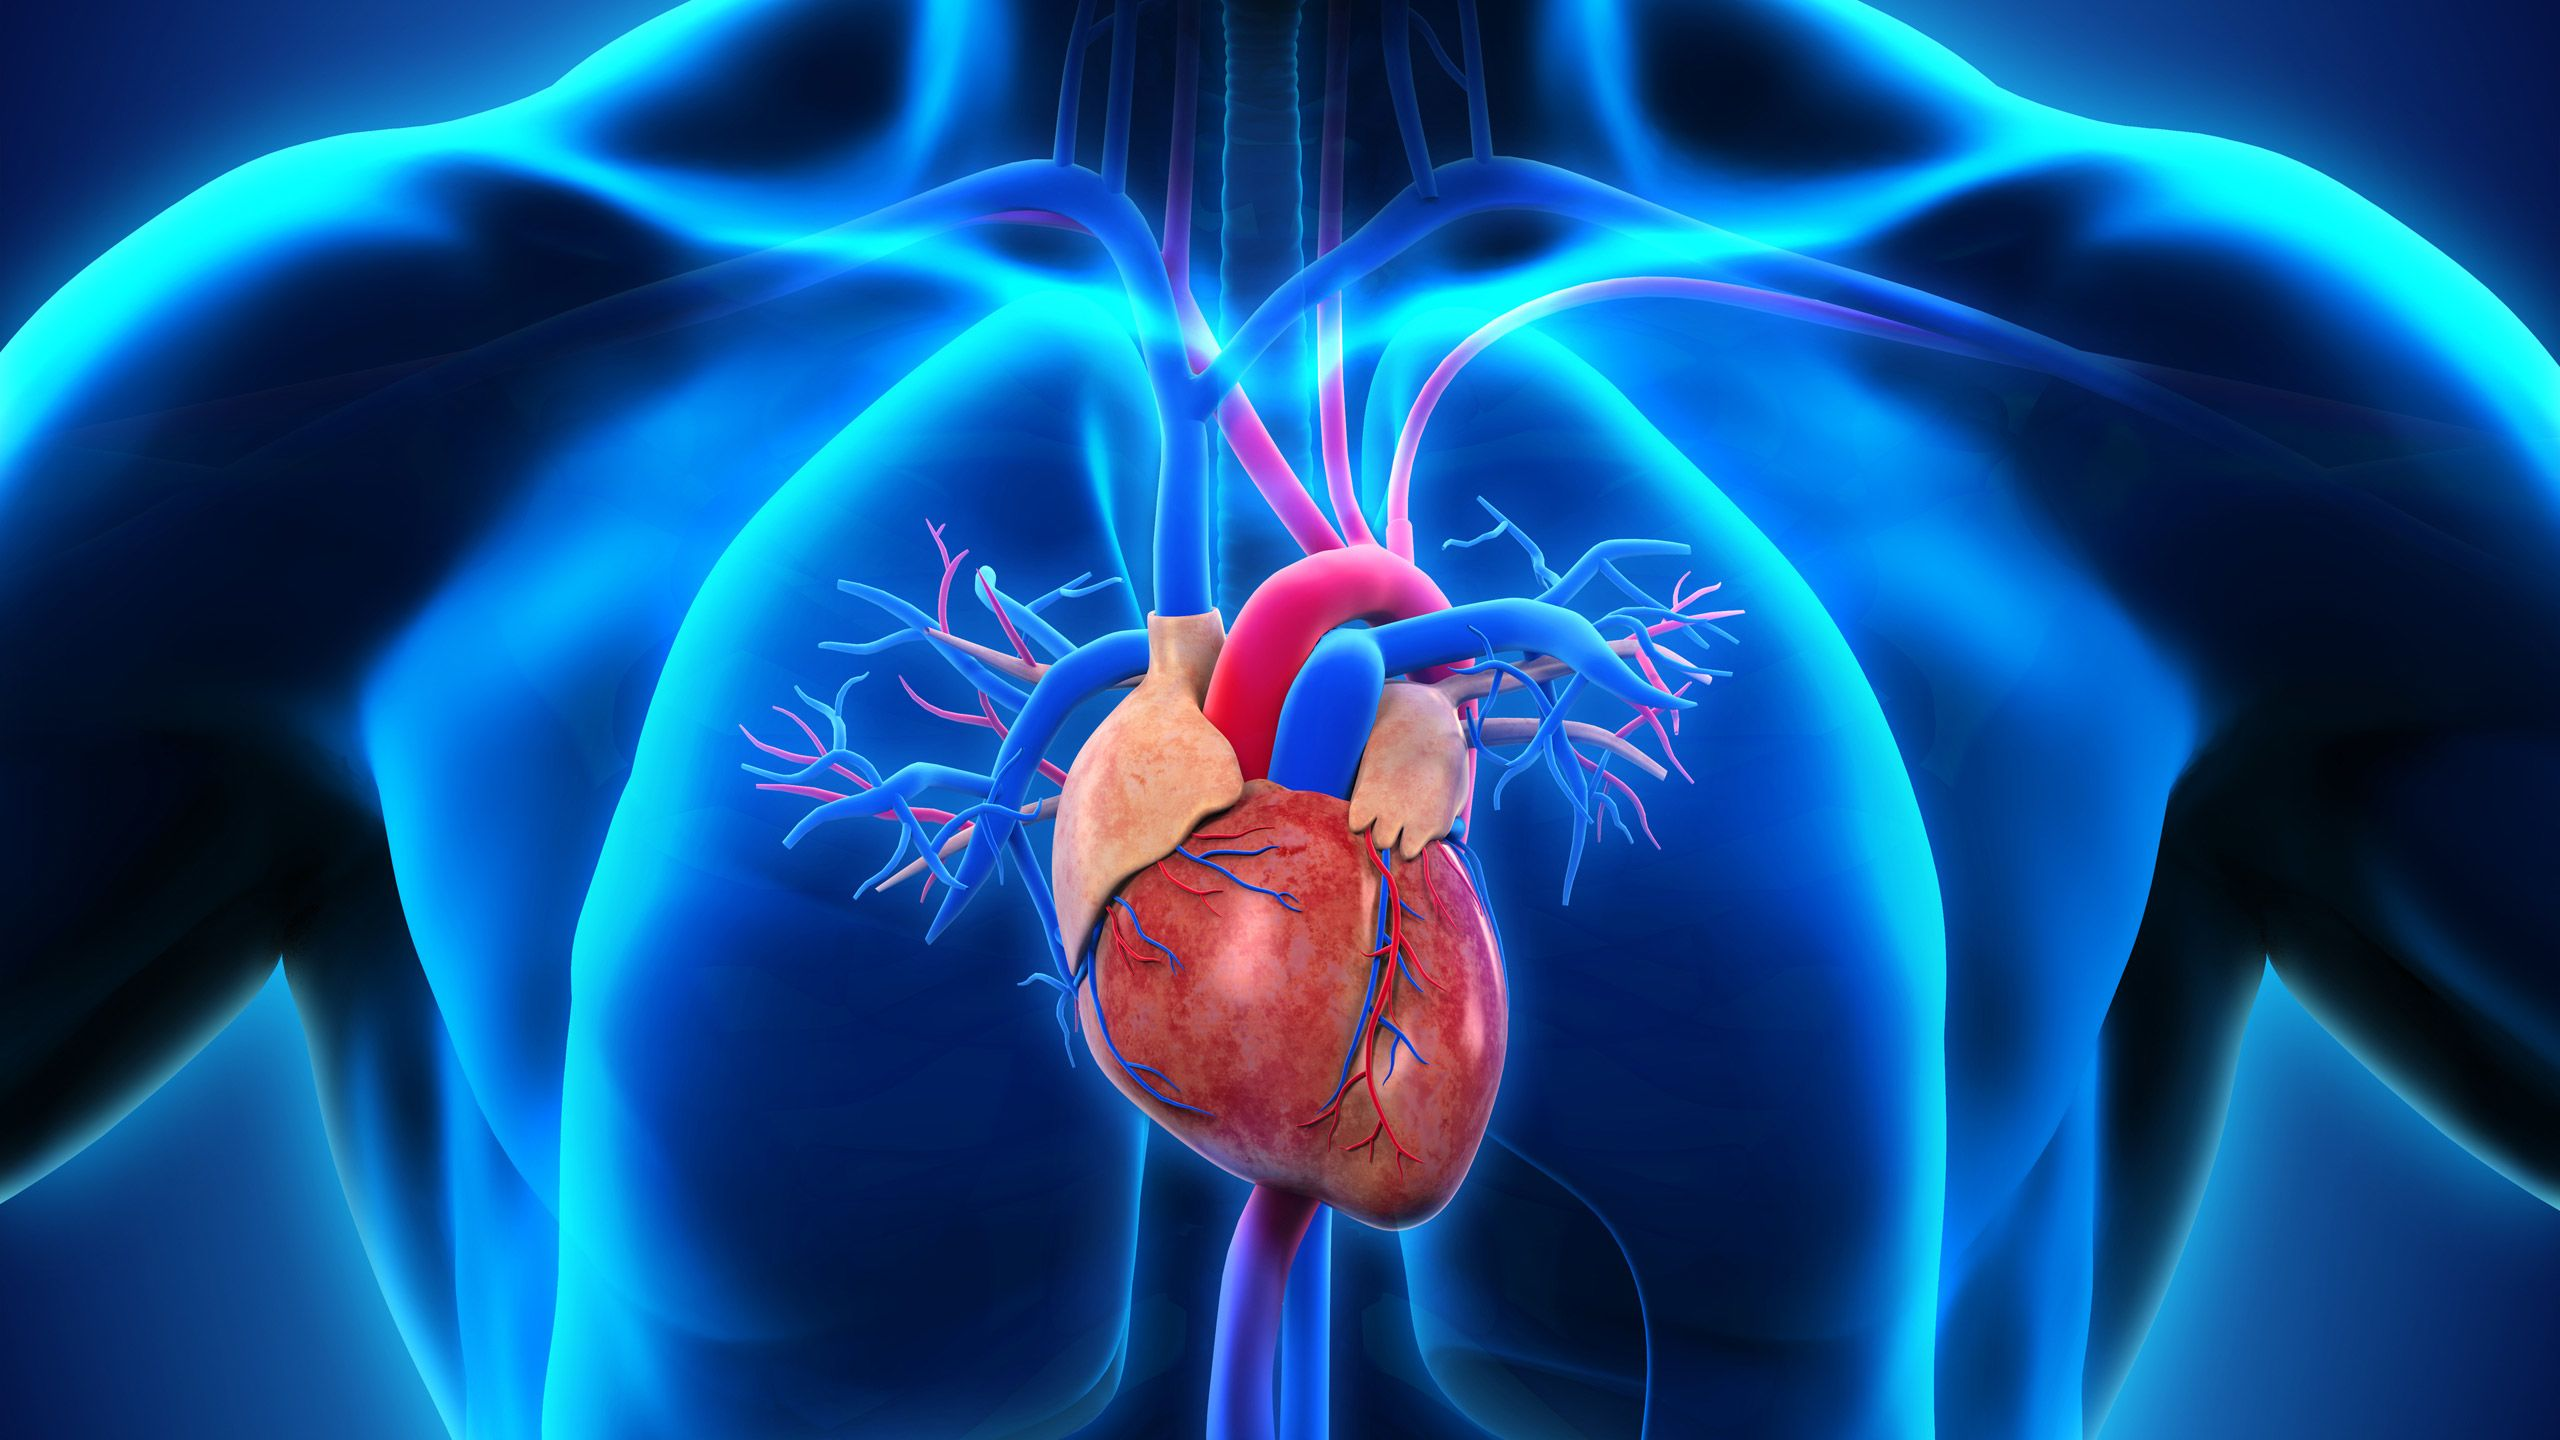 Innovative Treatments for Afib That Are Already Saving Lives